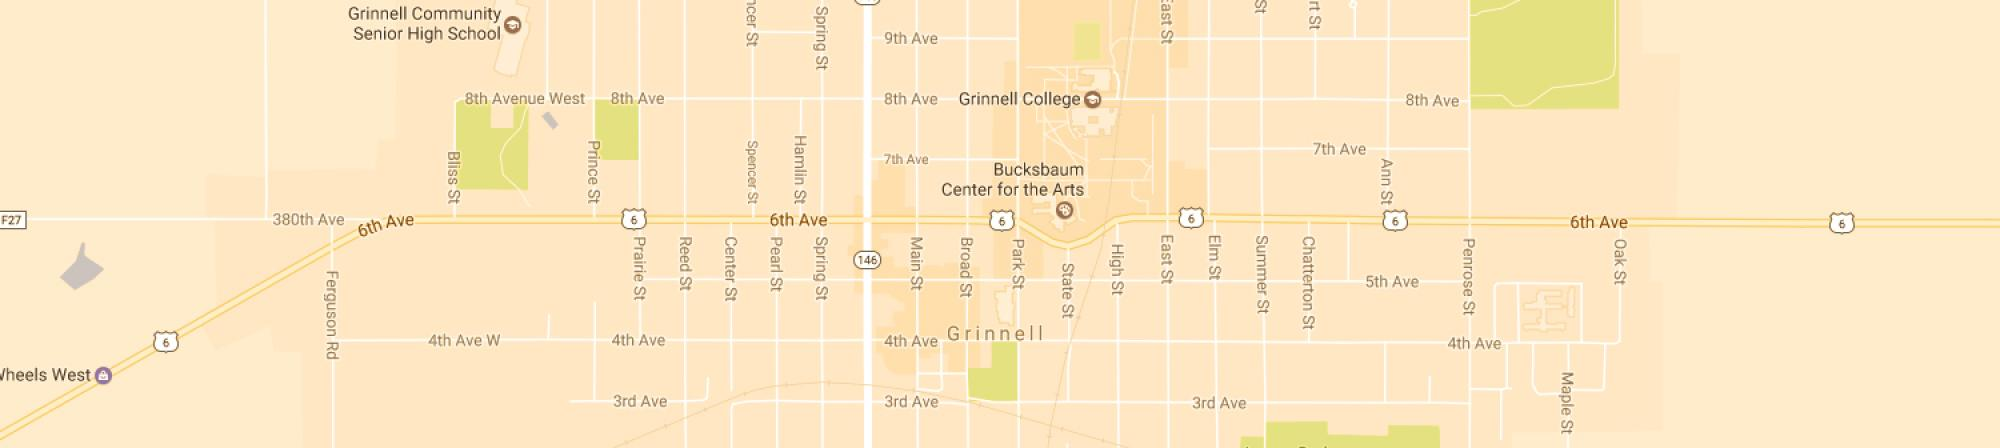 A Google Map of the Grinnell, IA area